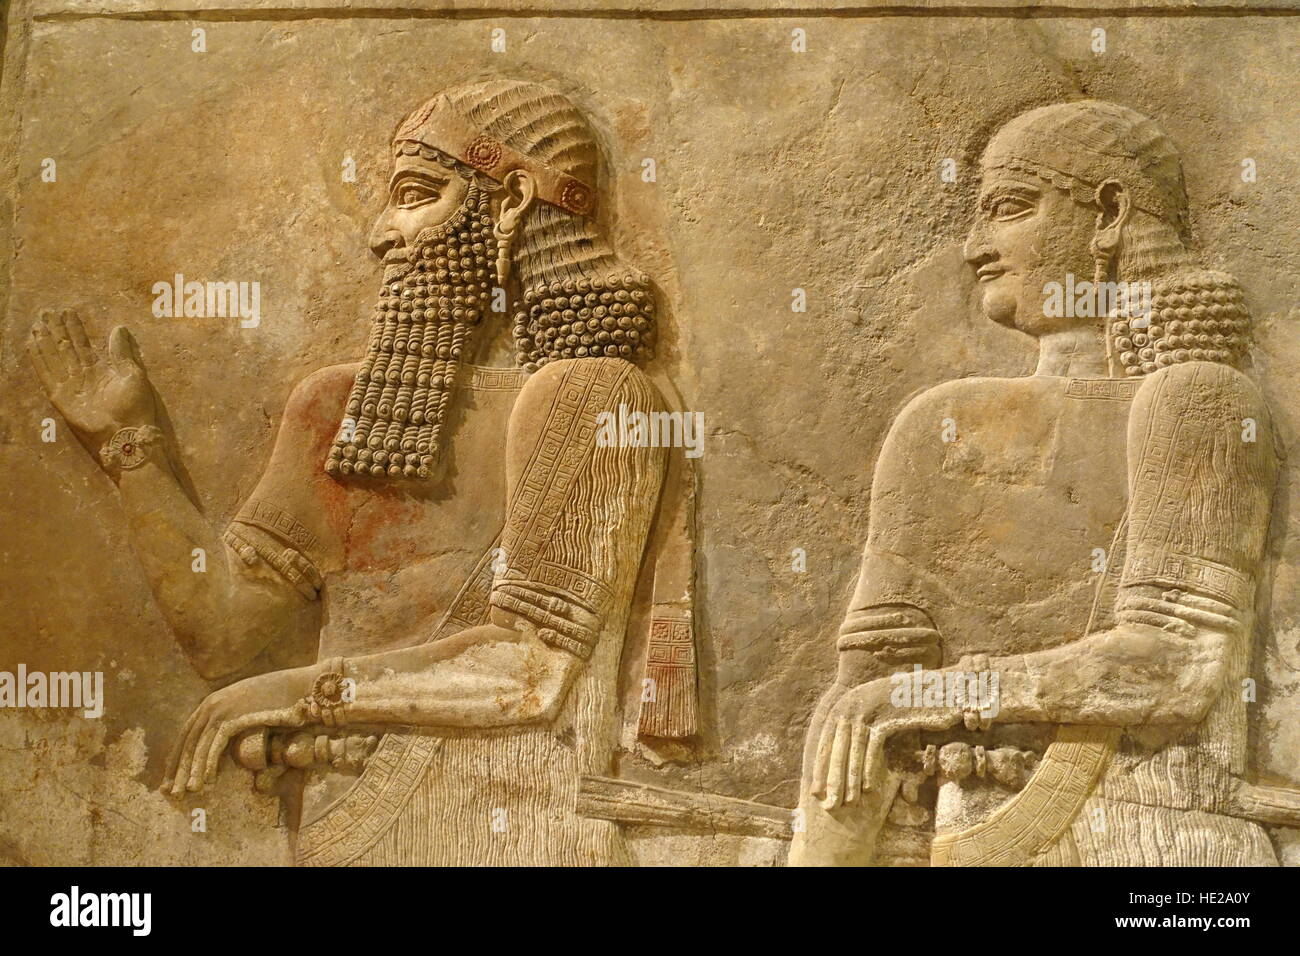 6022. King  Saragon II with guard, Assyria c. 716-713 BC. Relief from King Saragon's palace in Khorsabad (Iran) - Stock Image